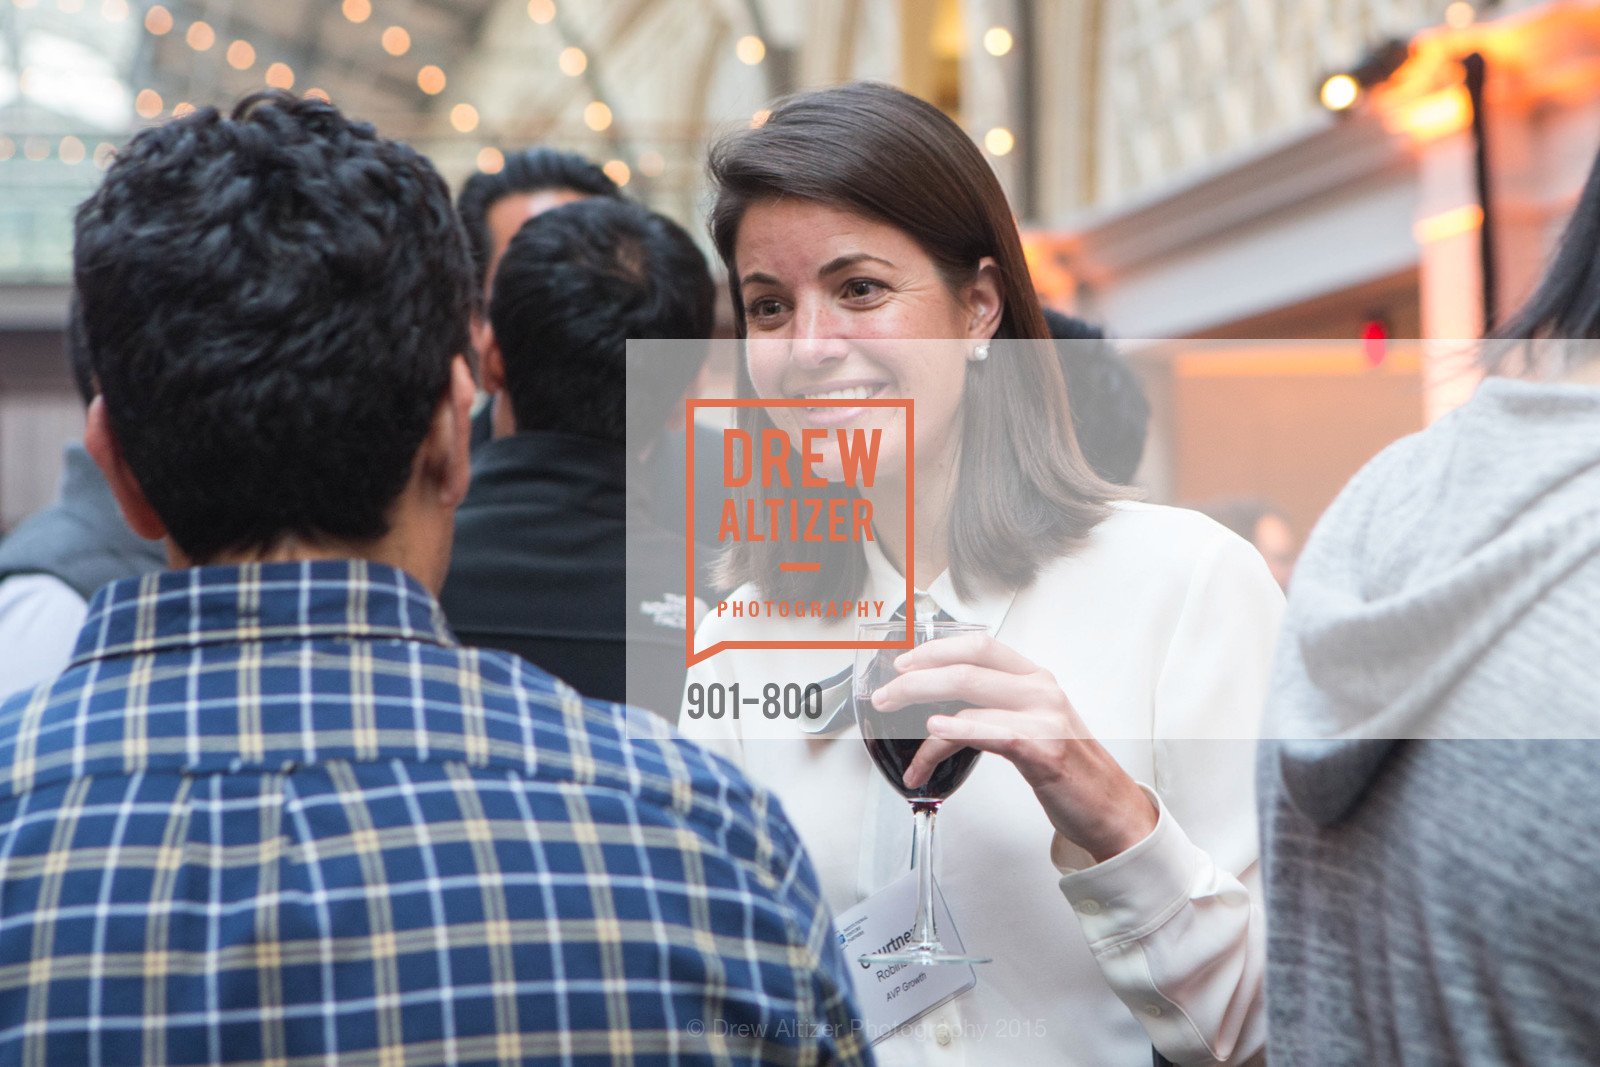 Extras, IVP Spring Party, April 24th, 2015, Photo,Drew Altizer, Drew Altizer Photography, full-service event agency, private events, San Francisco photographer, photographer California